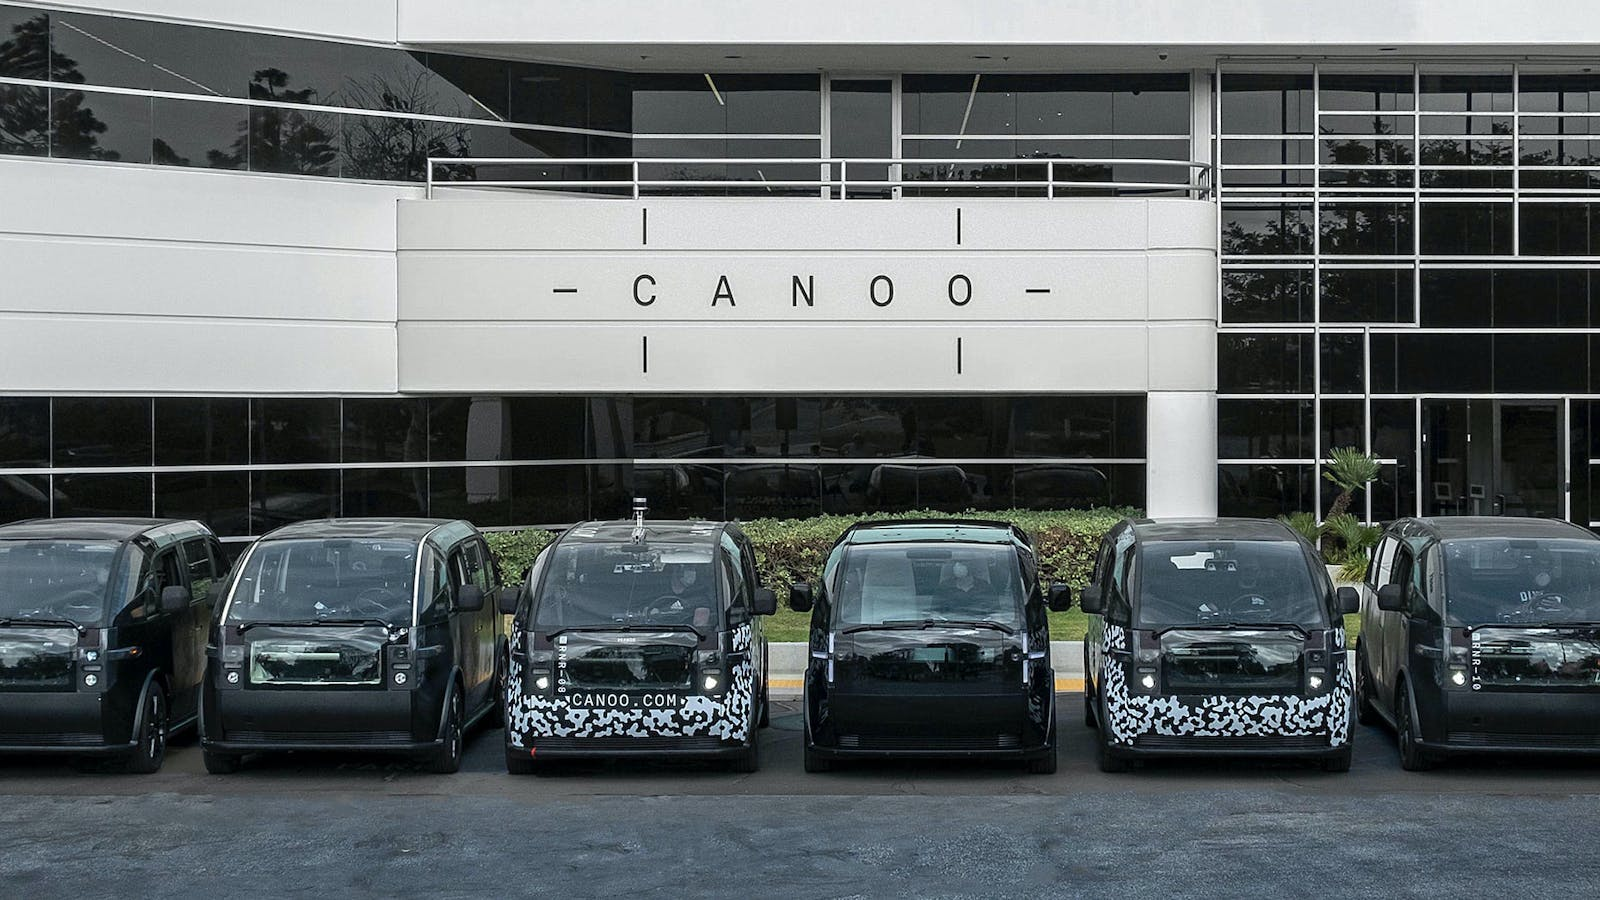 Canoo's beta vehicles. Photo courtesy of Canoo